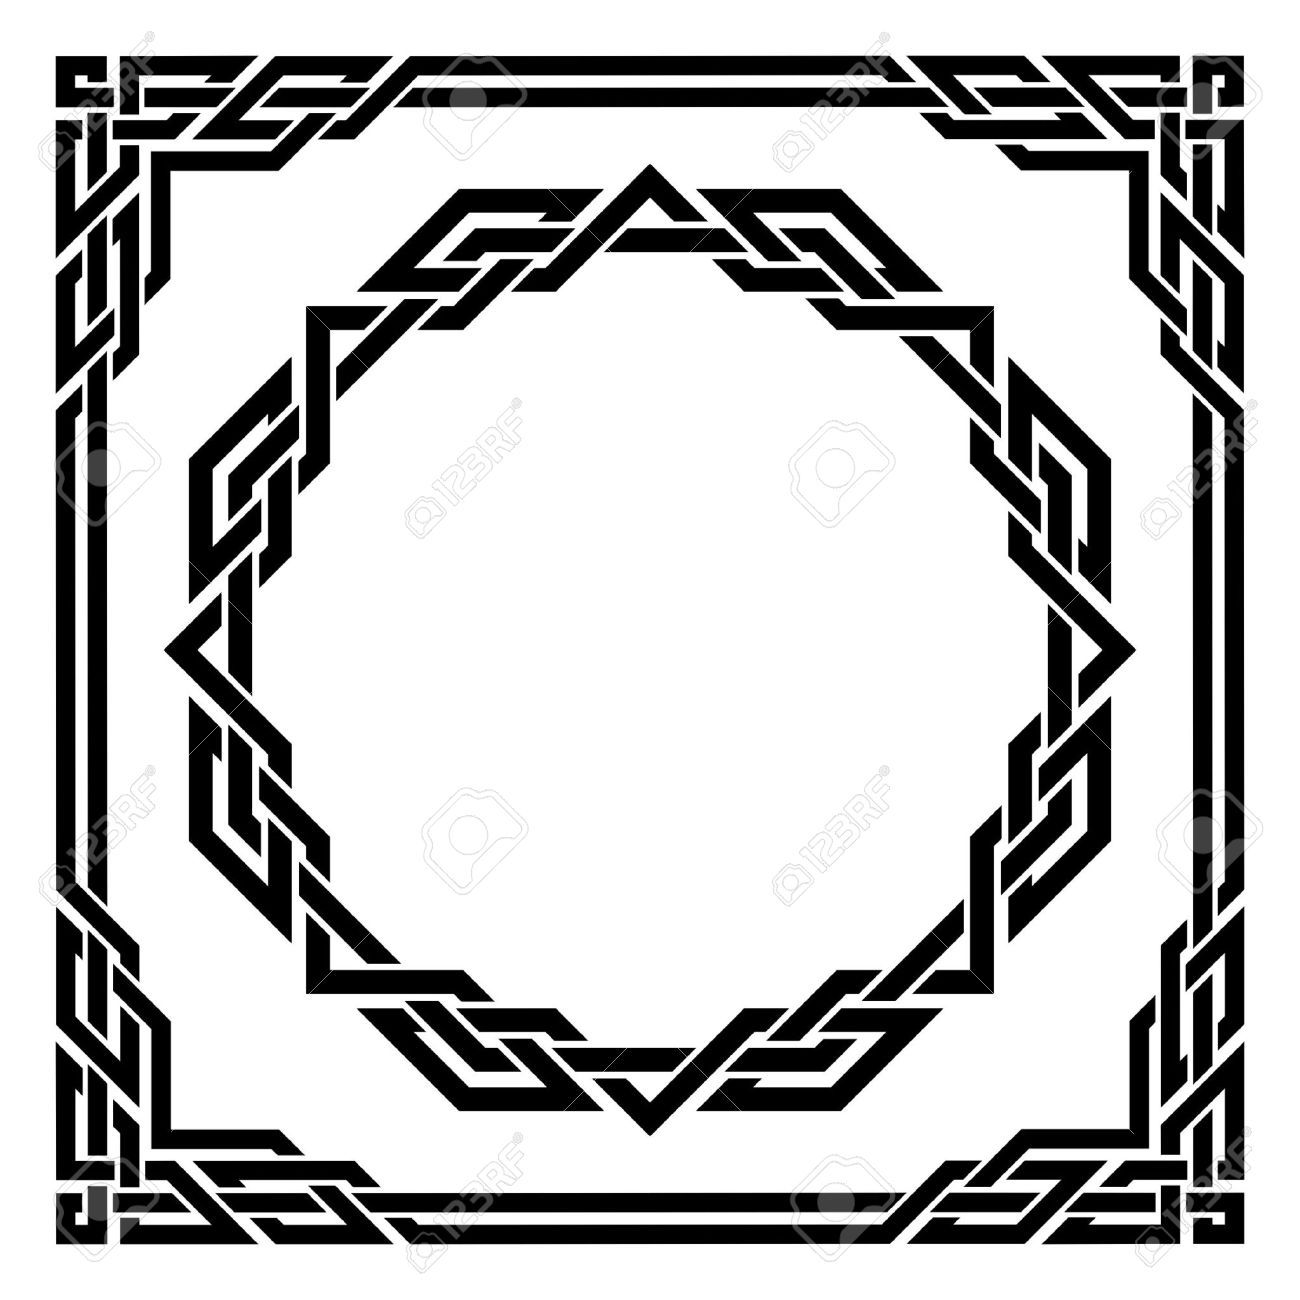 Polyvine celtic wall border stencil wall borders stenciling and celtic border images stock pictures royalty free celtic border amipublicfo Gallery